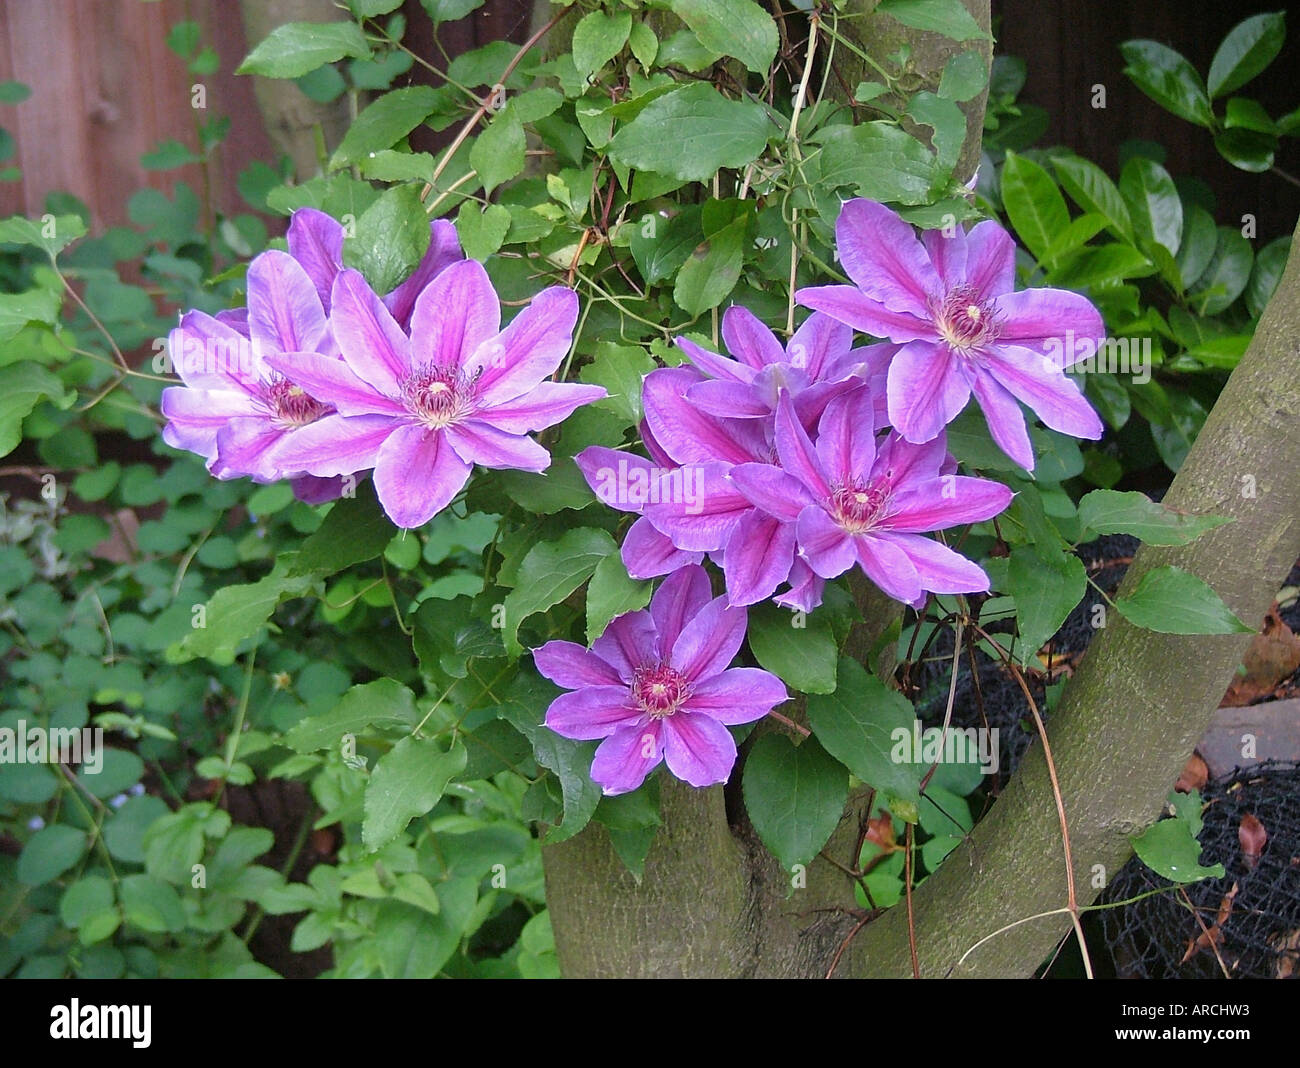 clematis horn of plenty growing up tree stock photo 9149778 alamy